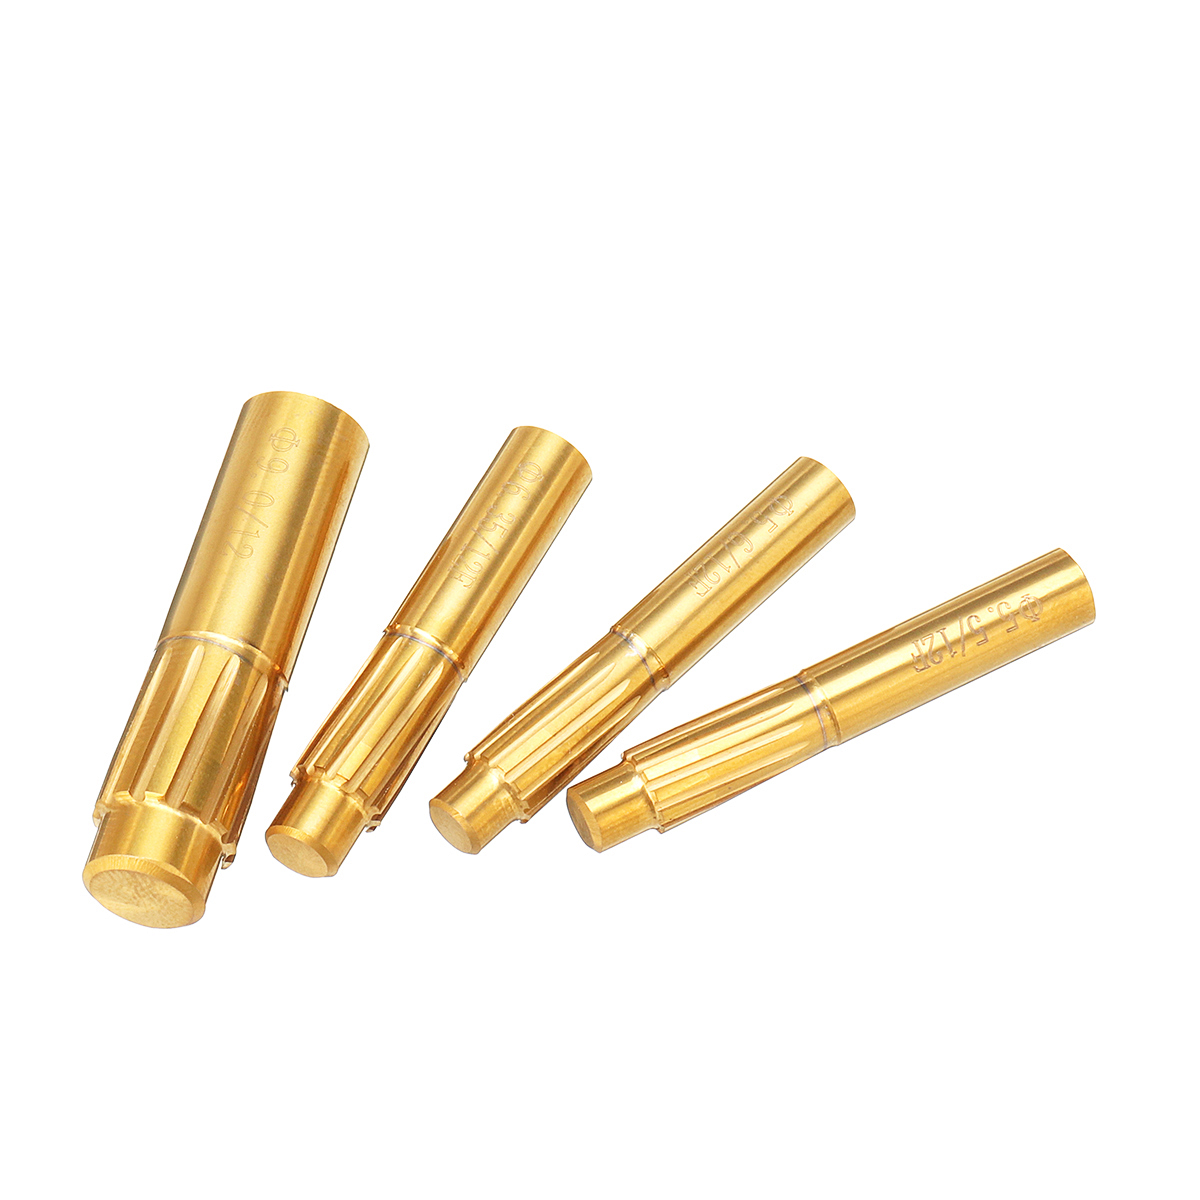 ChaRLes 12 Flutes 5.5mm-9.0mm Rifling Button Hard Alloy Chamber Helical Machine Reamer Tool 6.35mm